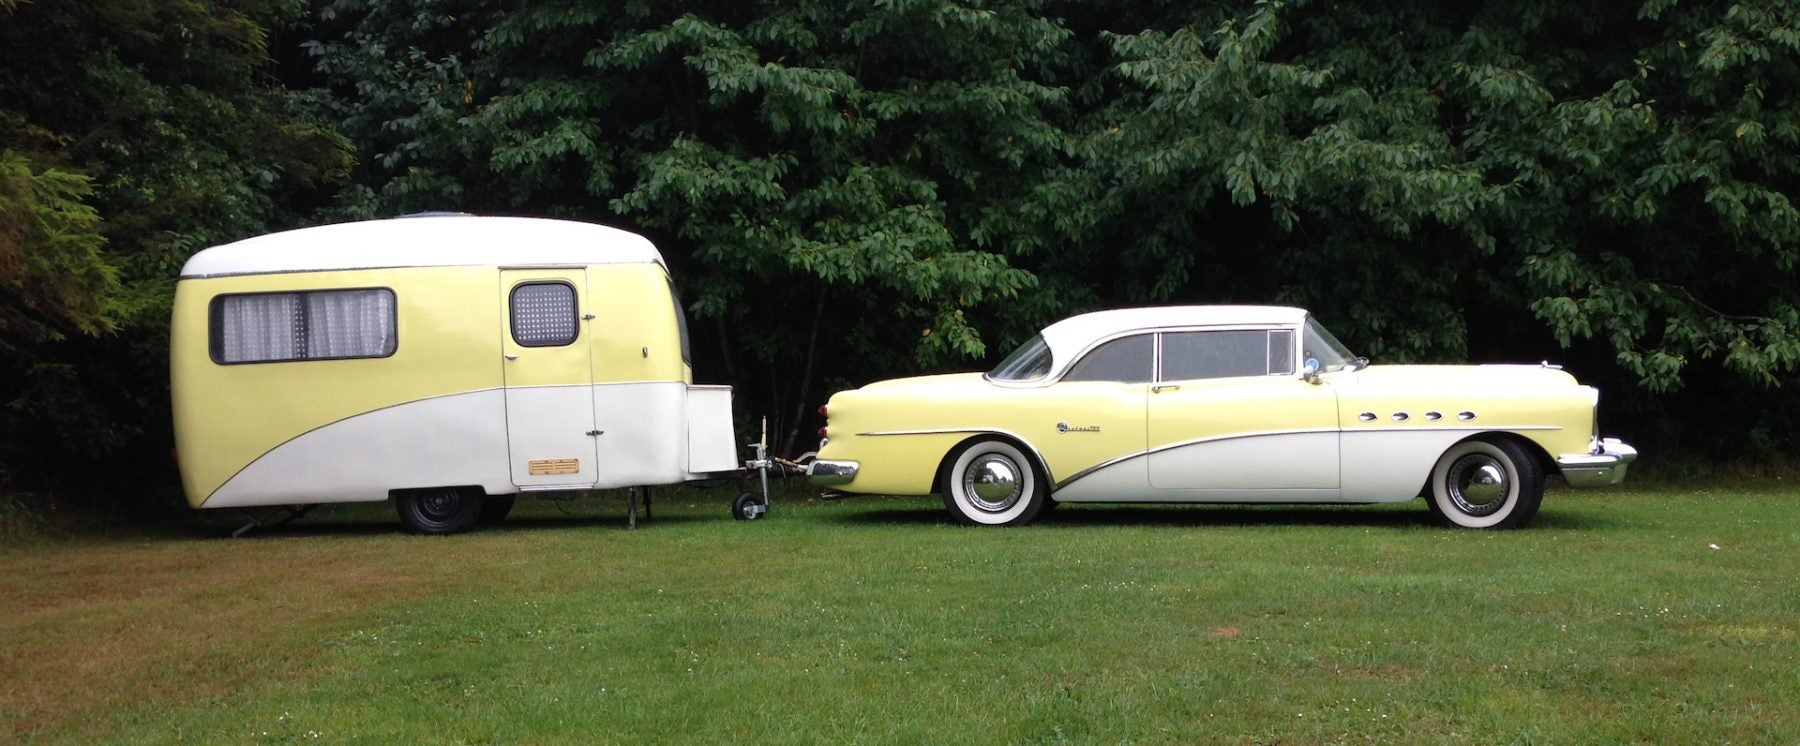 9 Quirky Vintage Trailer Campgrounds Across the Country